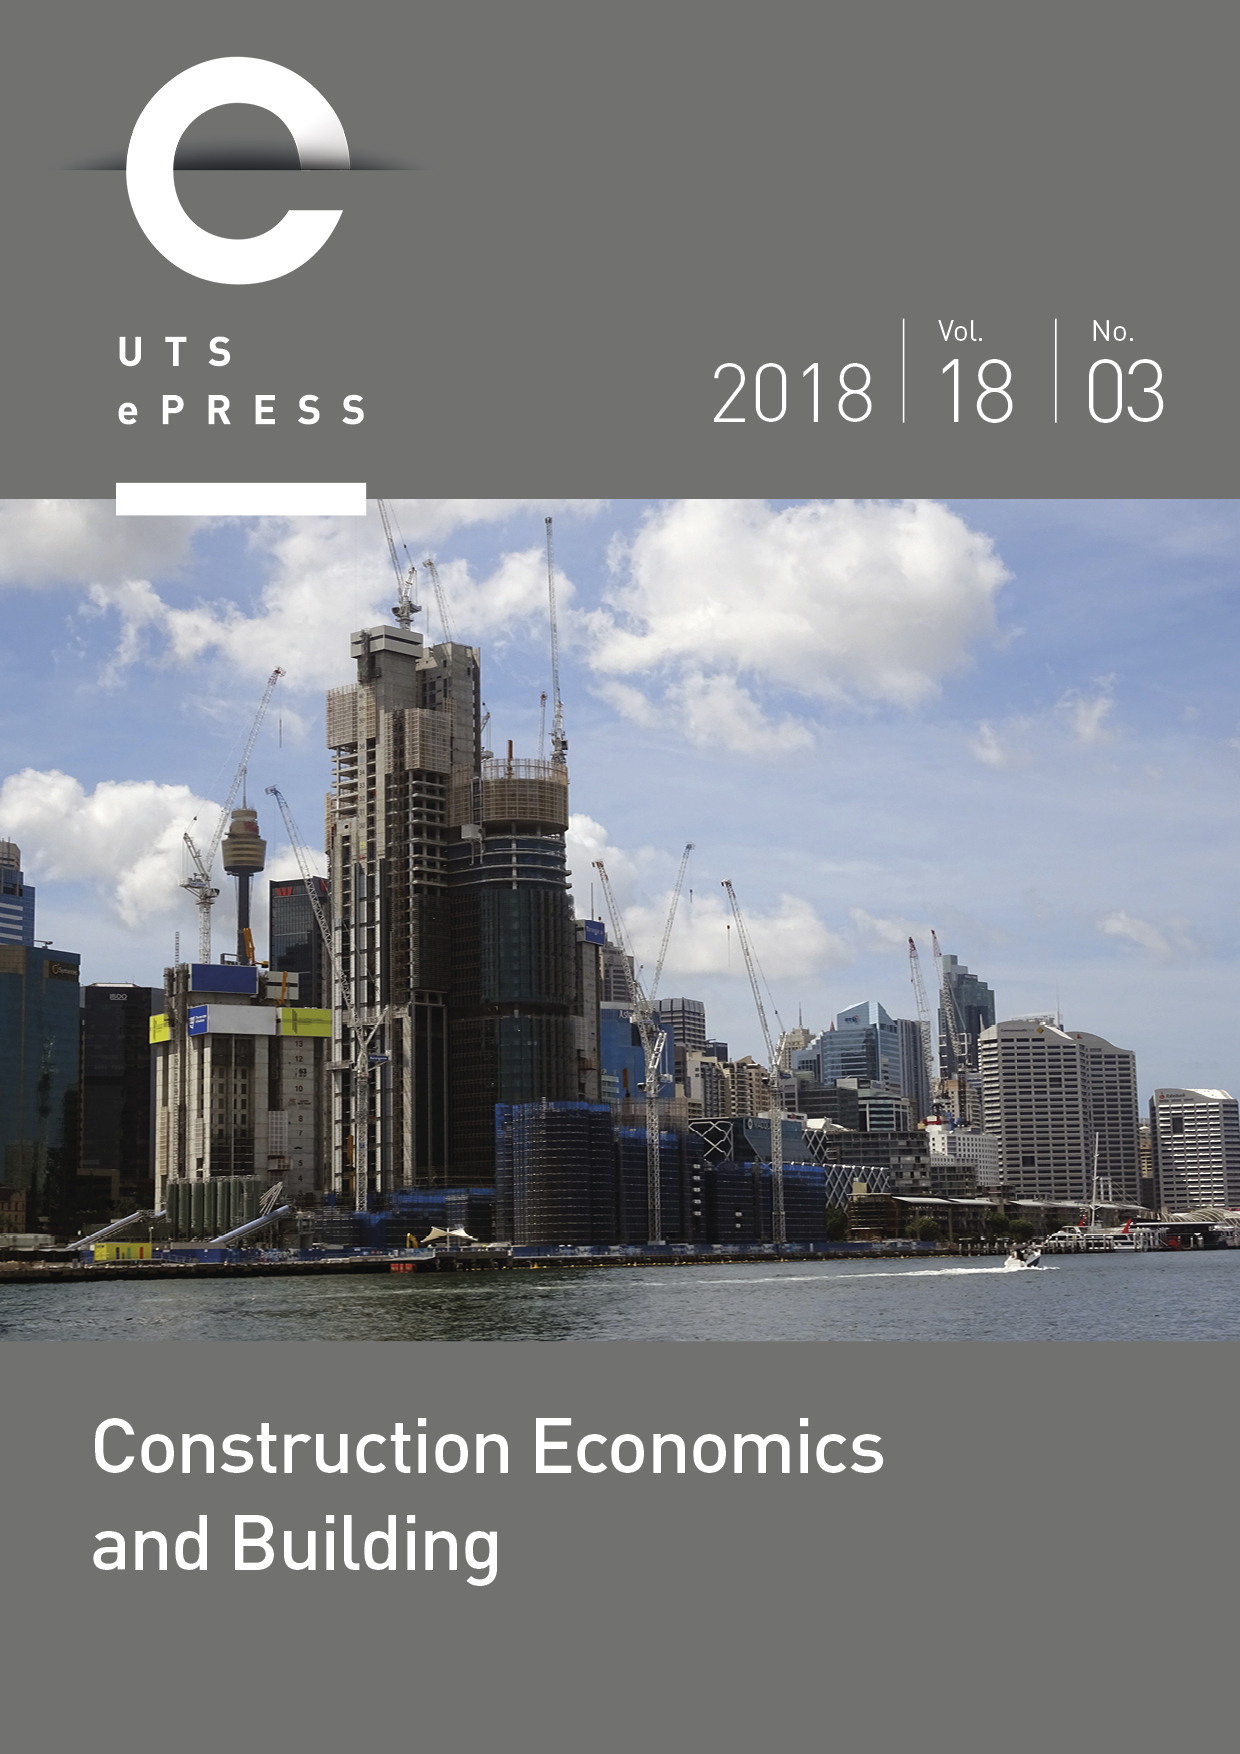 Cover: Construction Economics and Building, volume 18, issue number 3, September